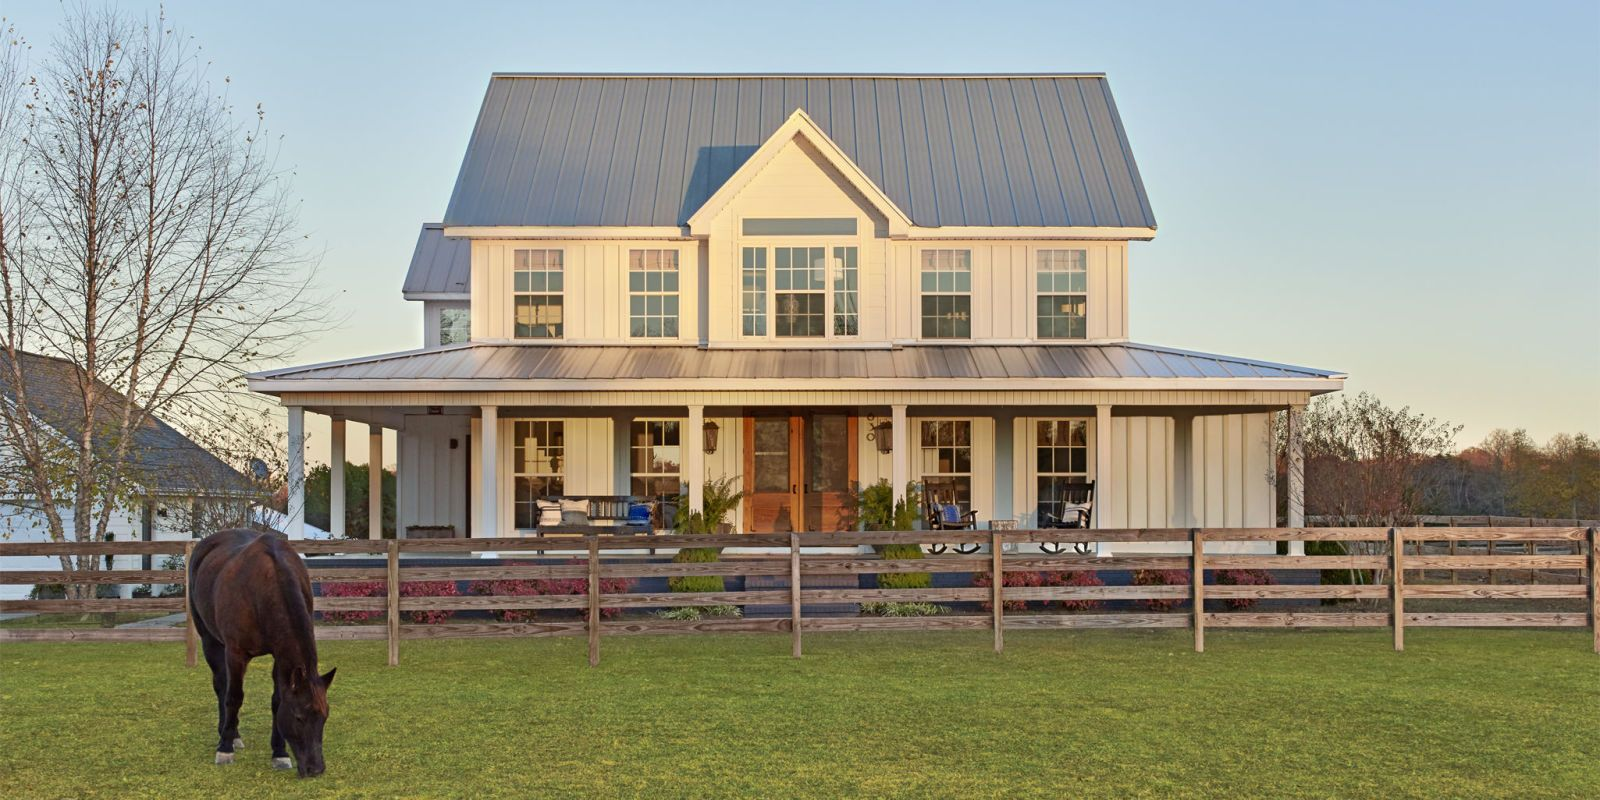 This couple turned a suburban cookie cutter home into a New farmhouse style